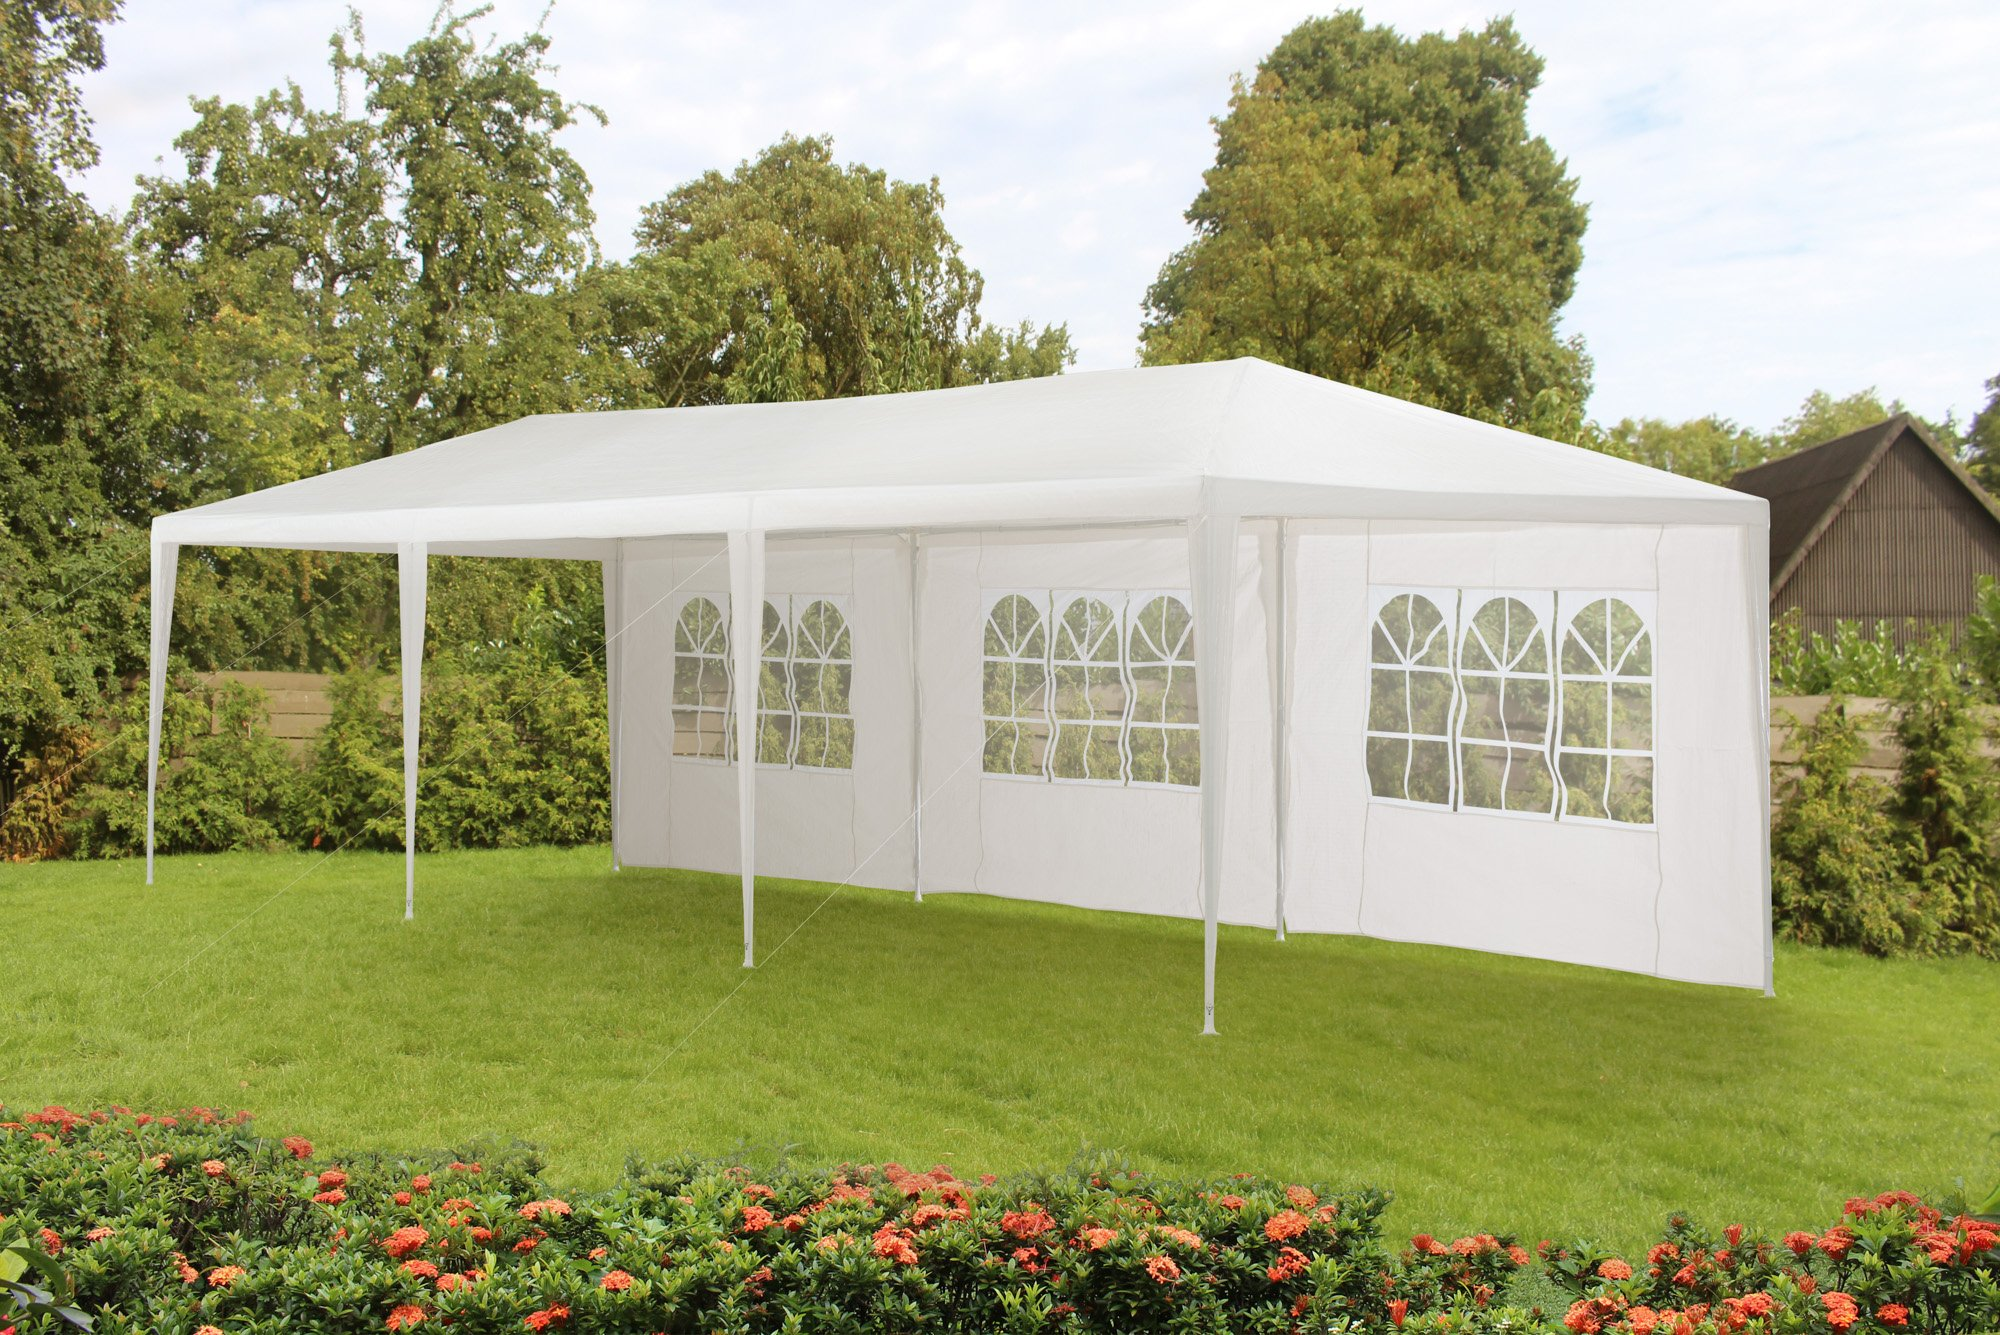 Sunjoy 10' x 30' Budget Party Tent Without Fire Retardant